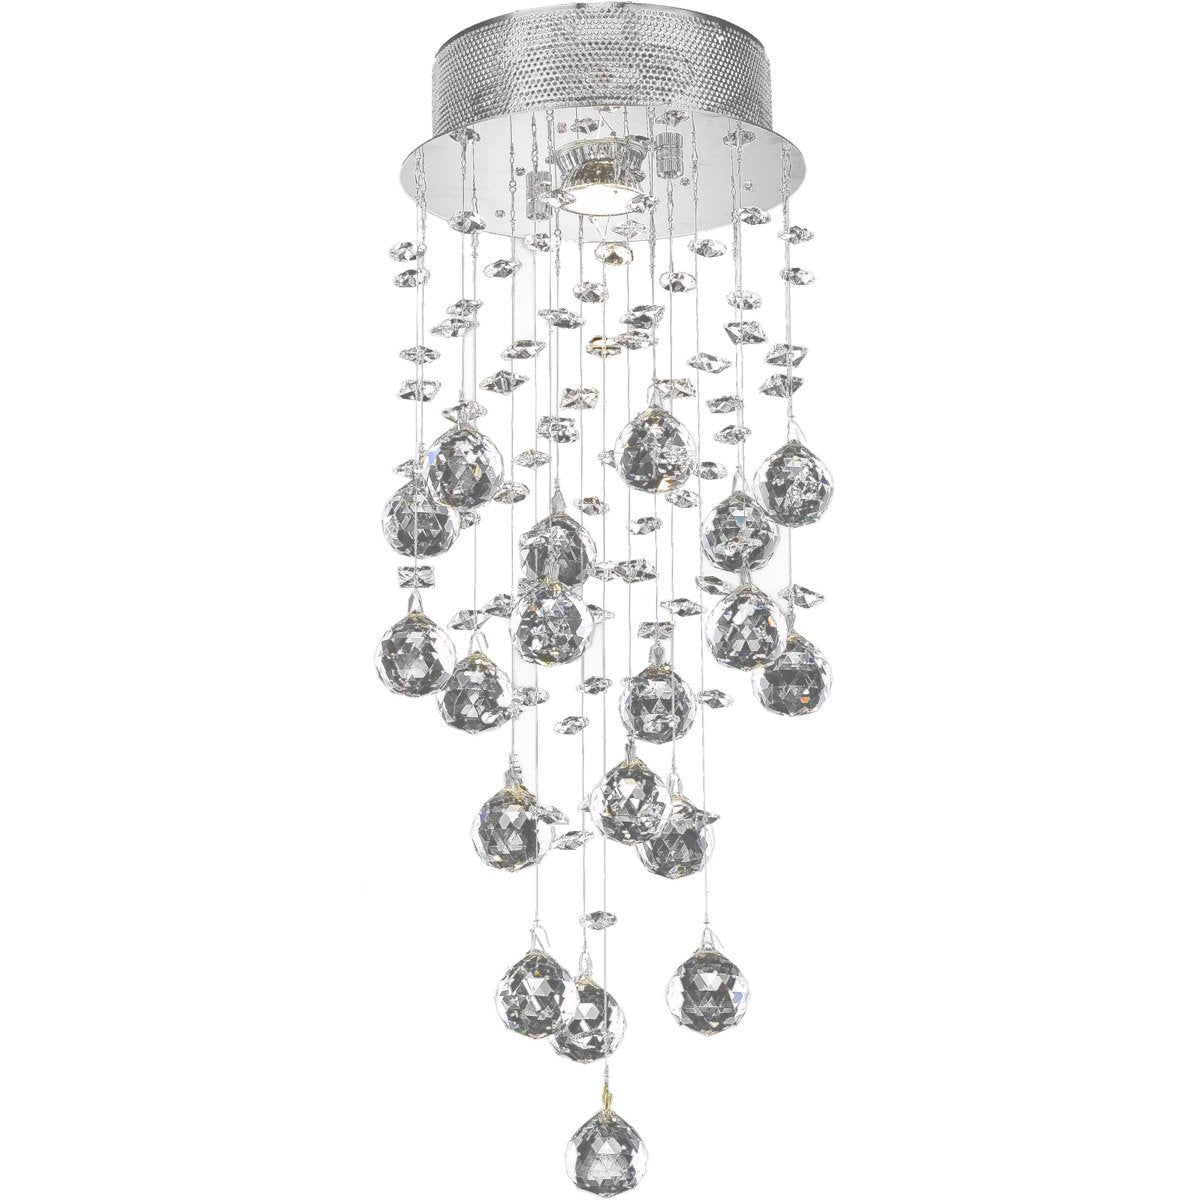 Galaxy 8 Crystal Flush Mount With 1 Lights - Chrome Finish Flush Mount